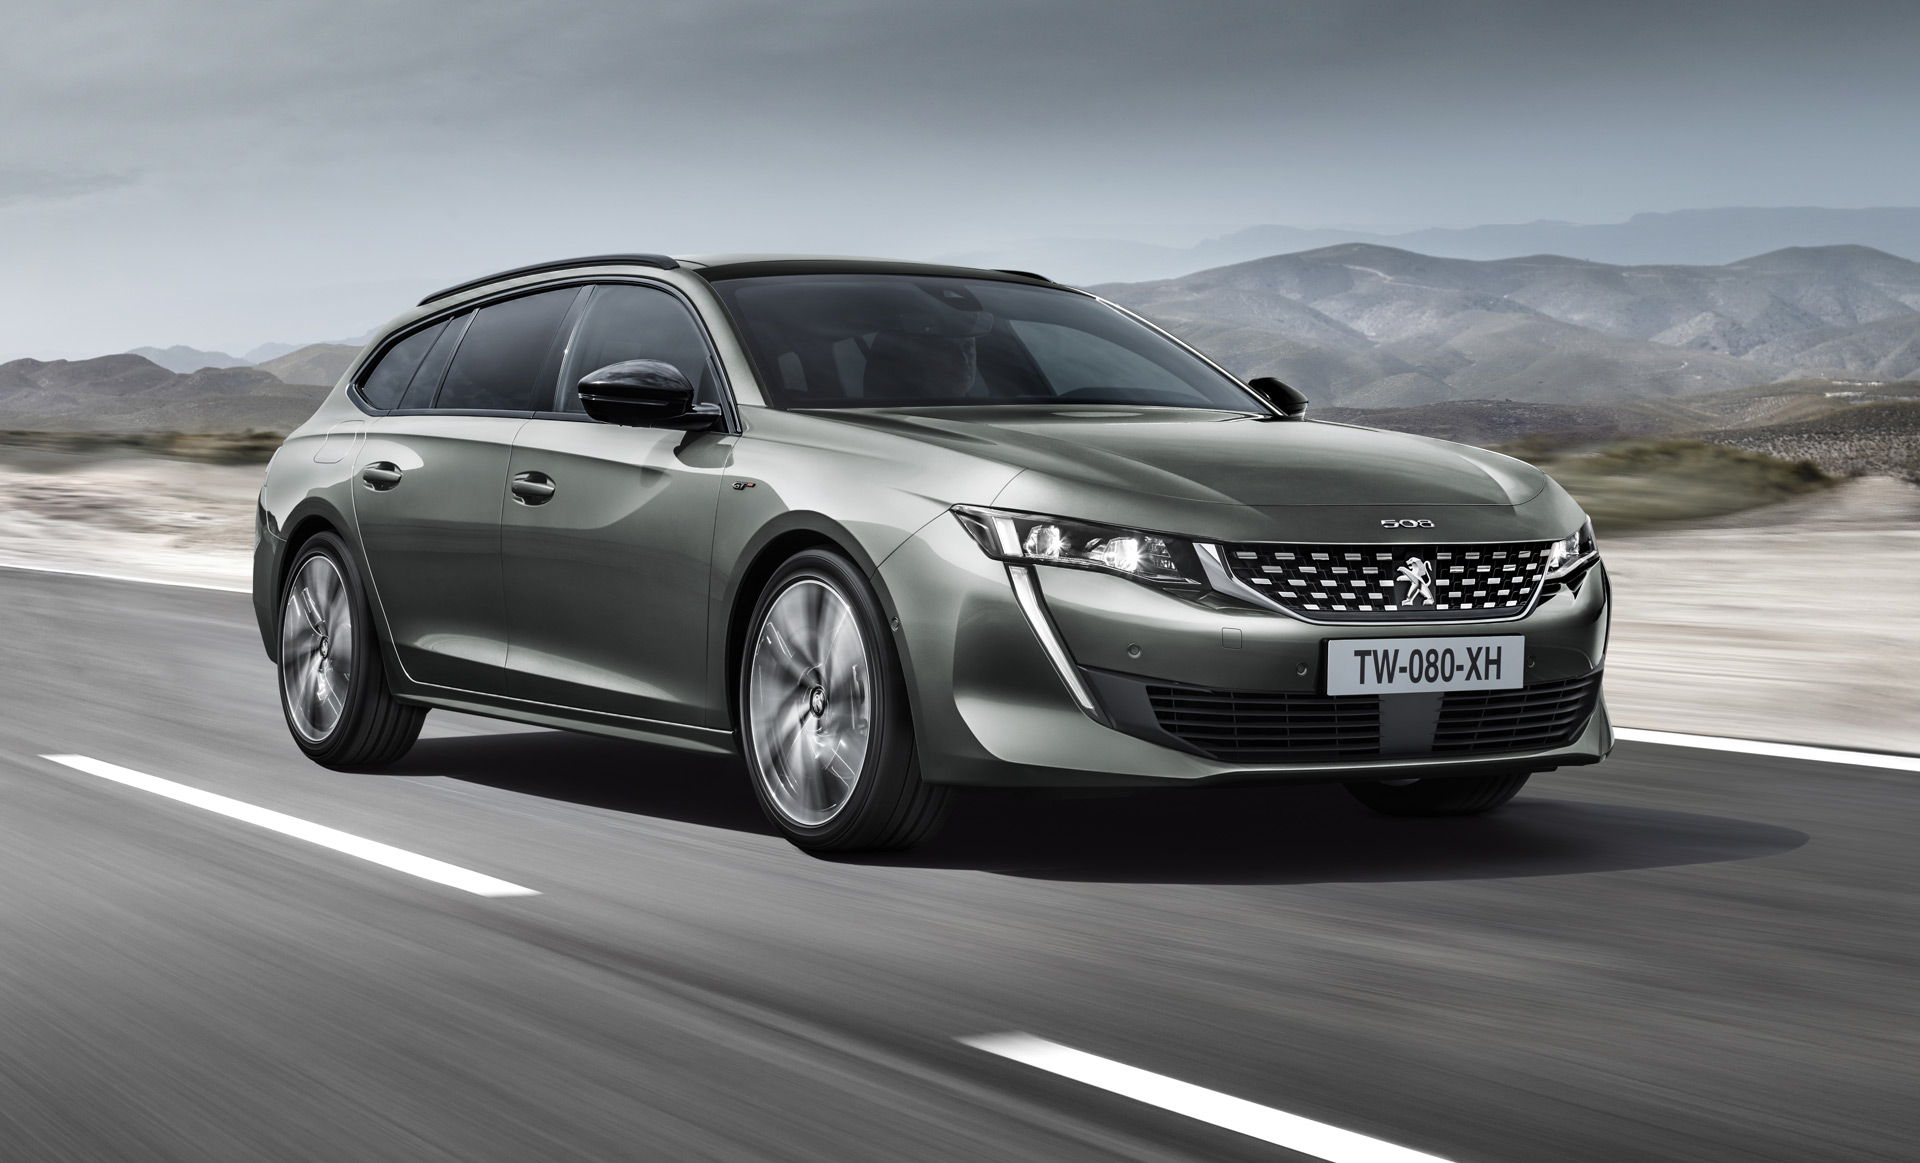 2018 Peugeot 508 SW is a handsome load lugger